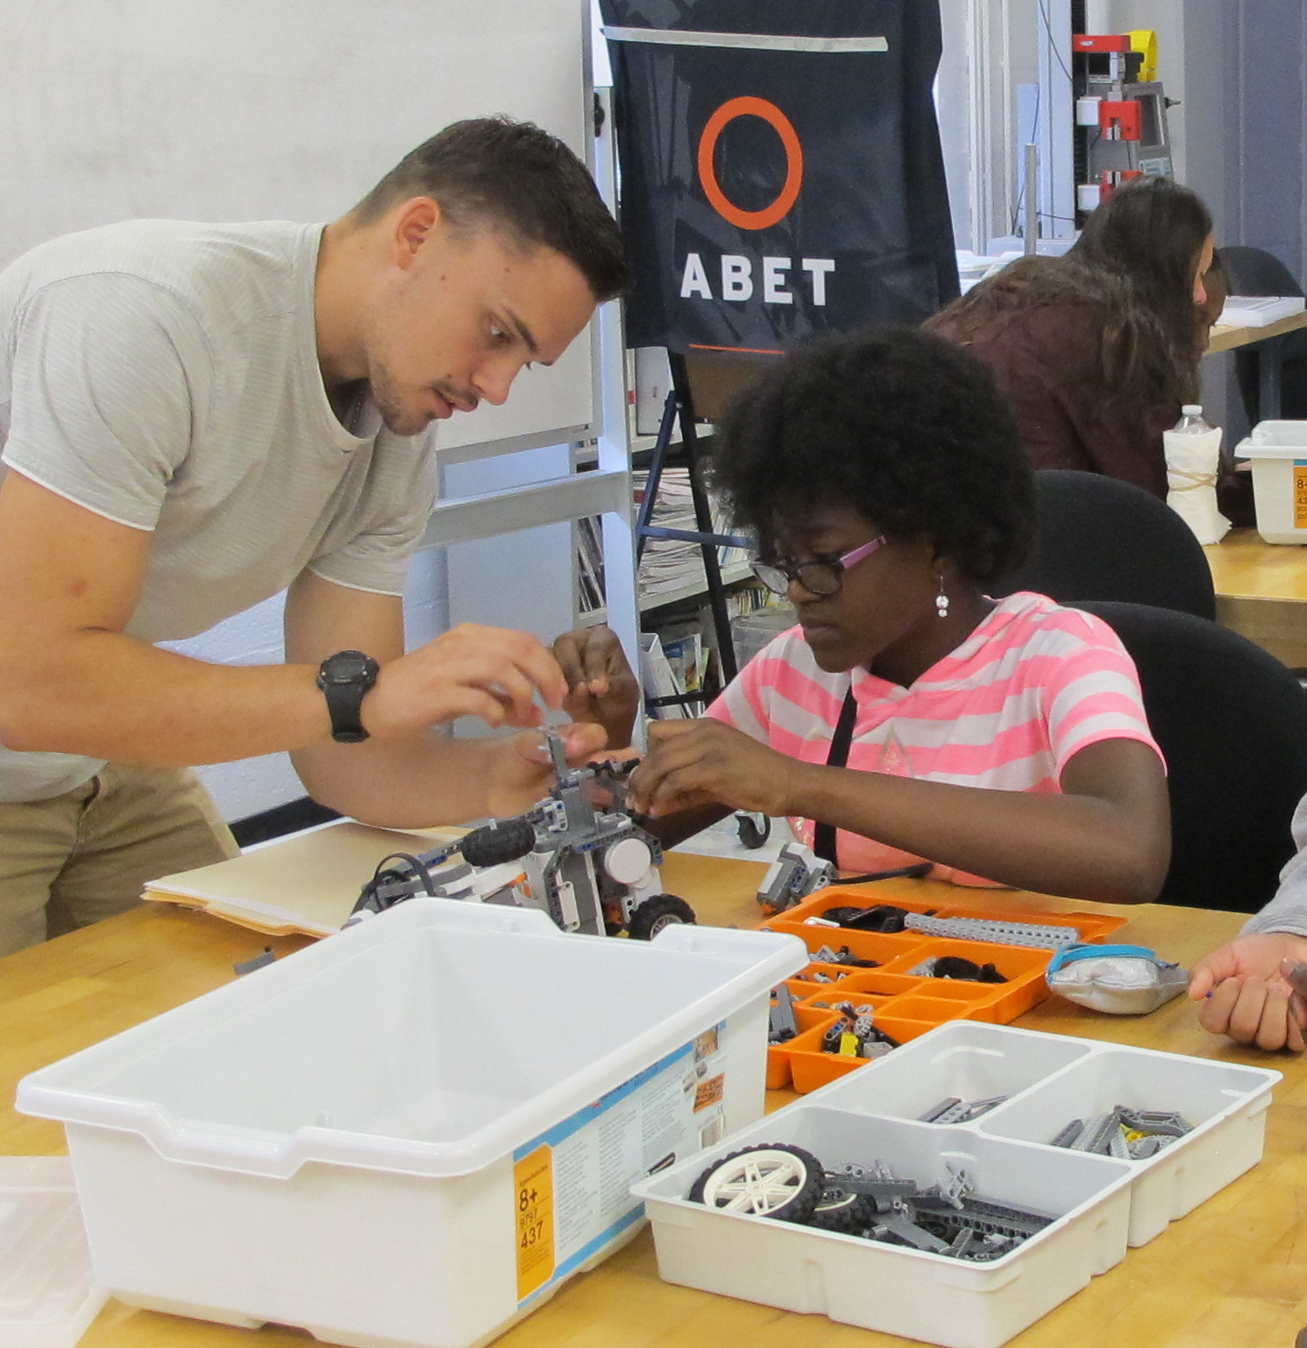 Engineering Printing In Philadelphia - Engineering student brandon smith helps camper leticia bonds with her model